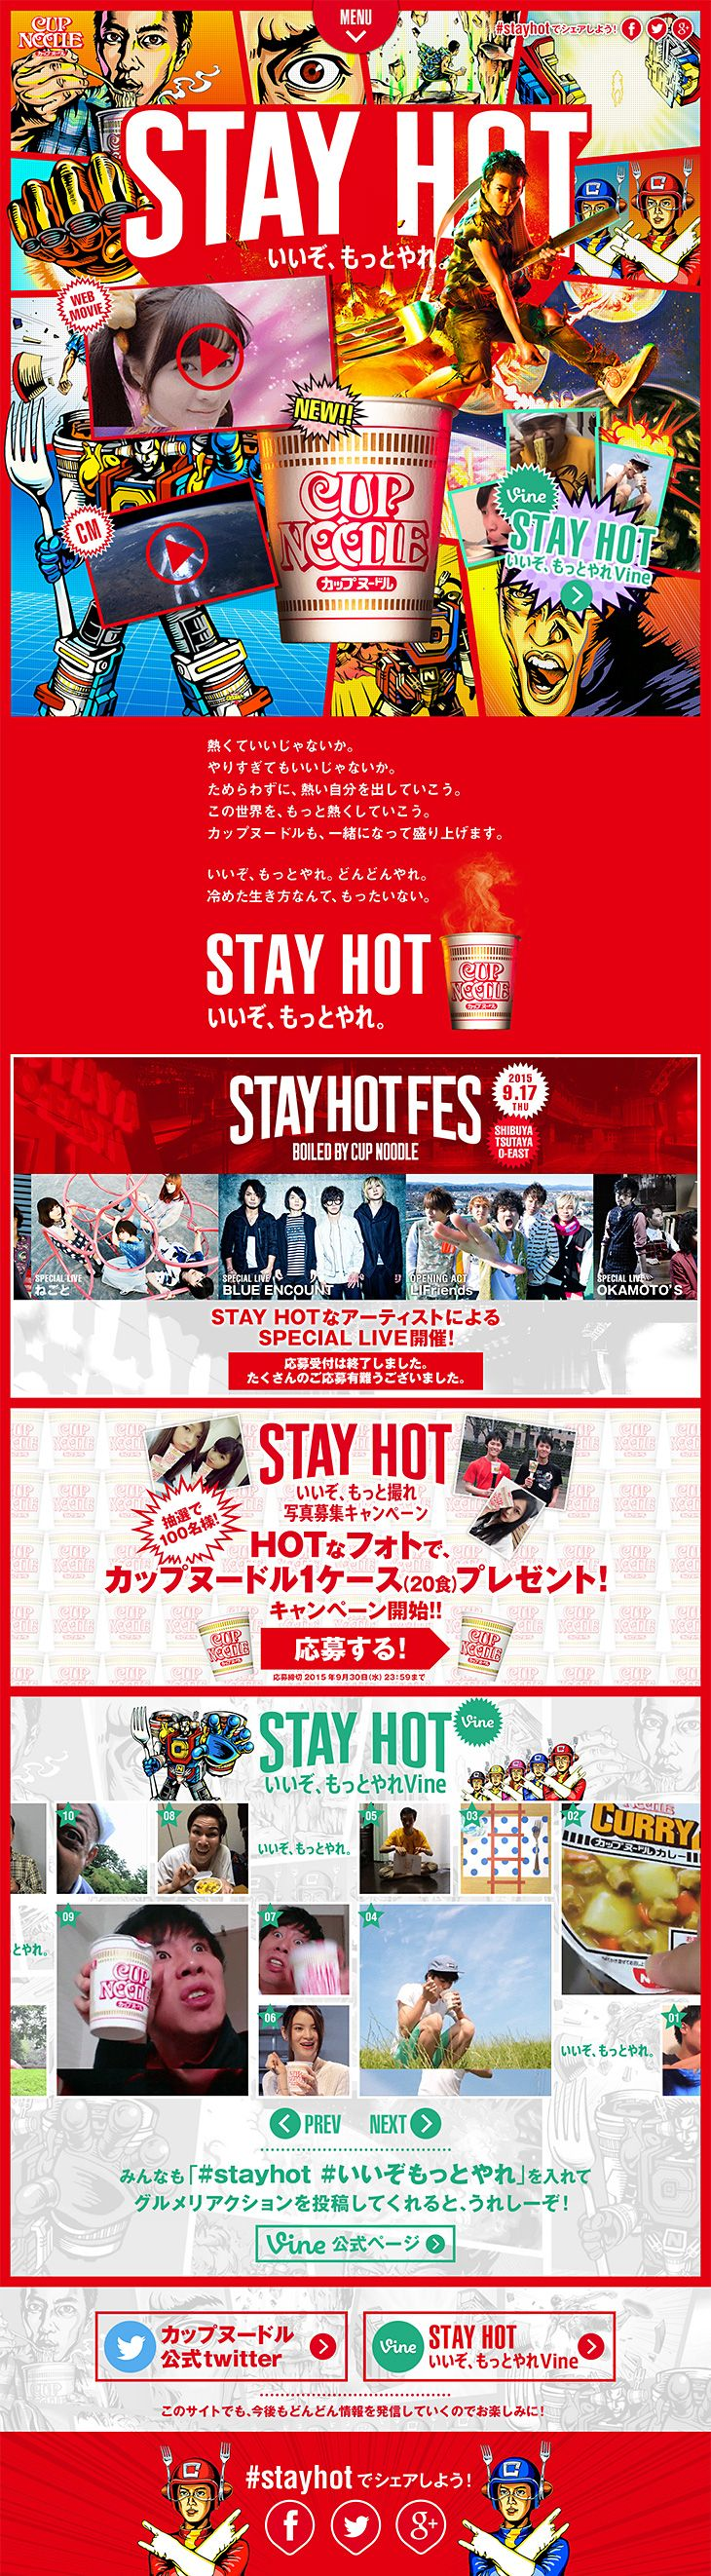 STAY HOTいいぞ、もっとやれ。CUP NOODLE